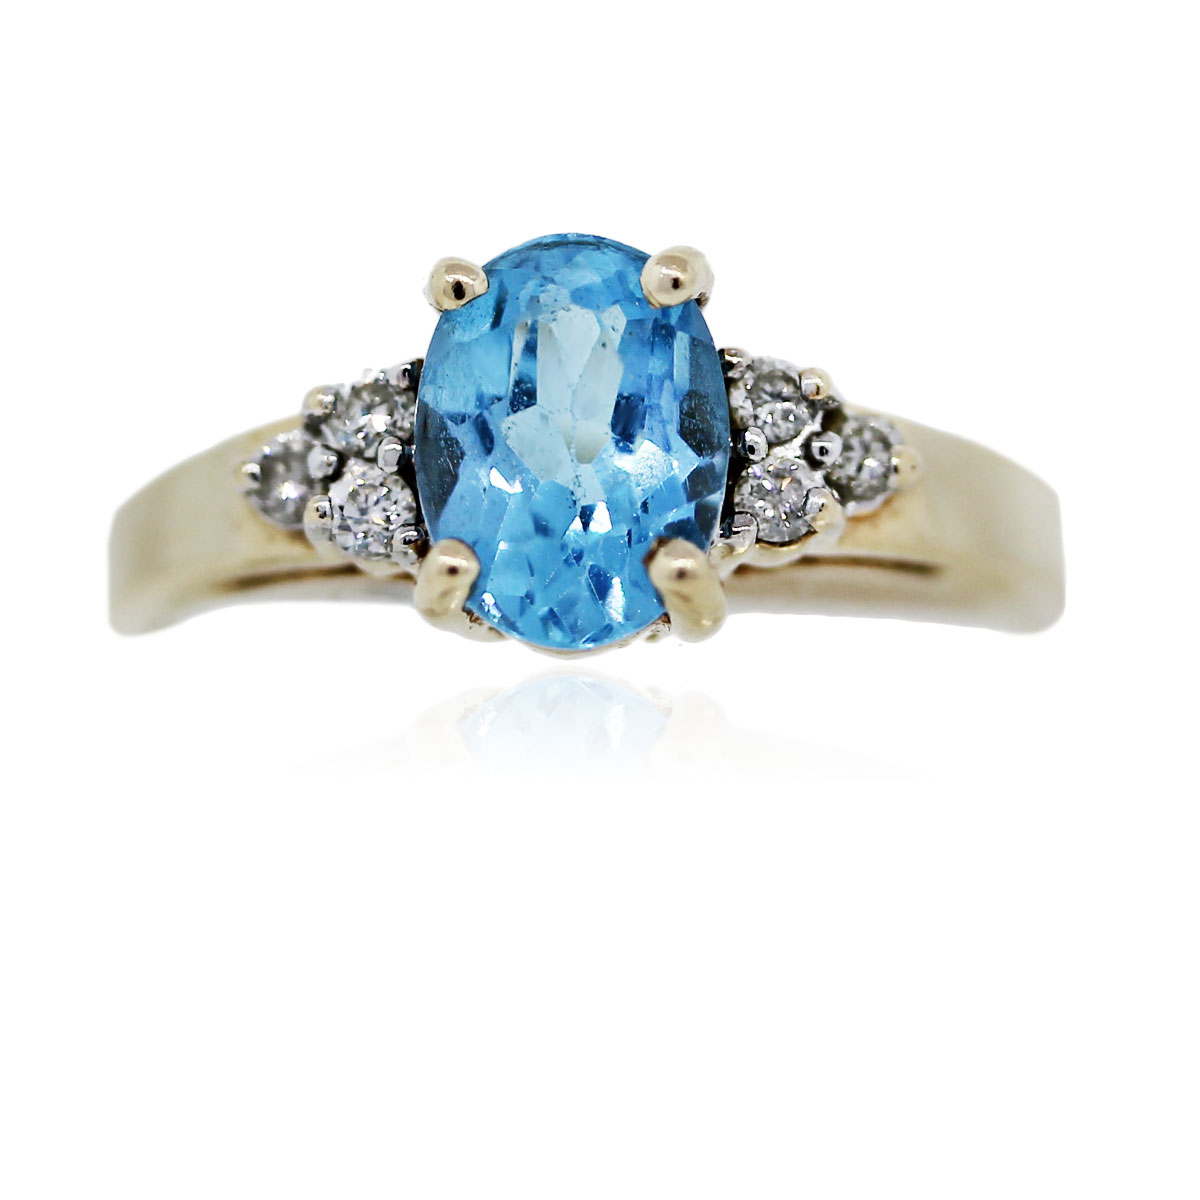 You are viewing this 14K Yellow Gold Oval Shape Blue Topaz With Diamonds Ring!